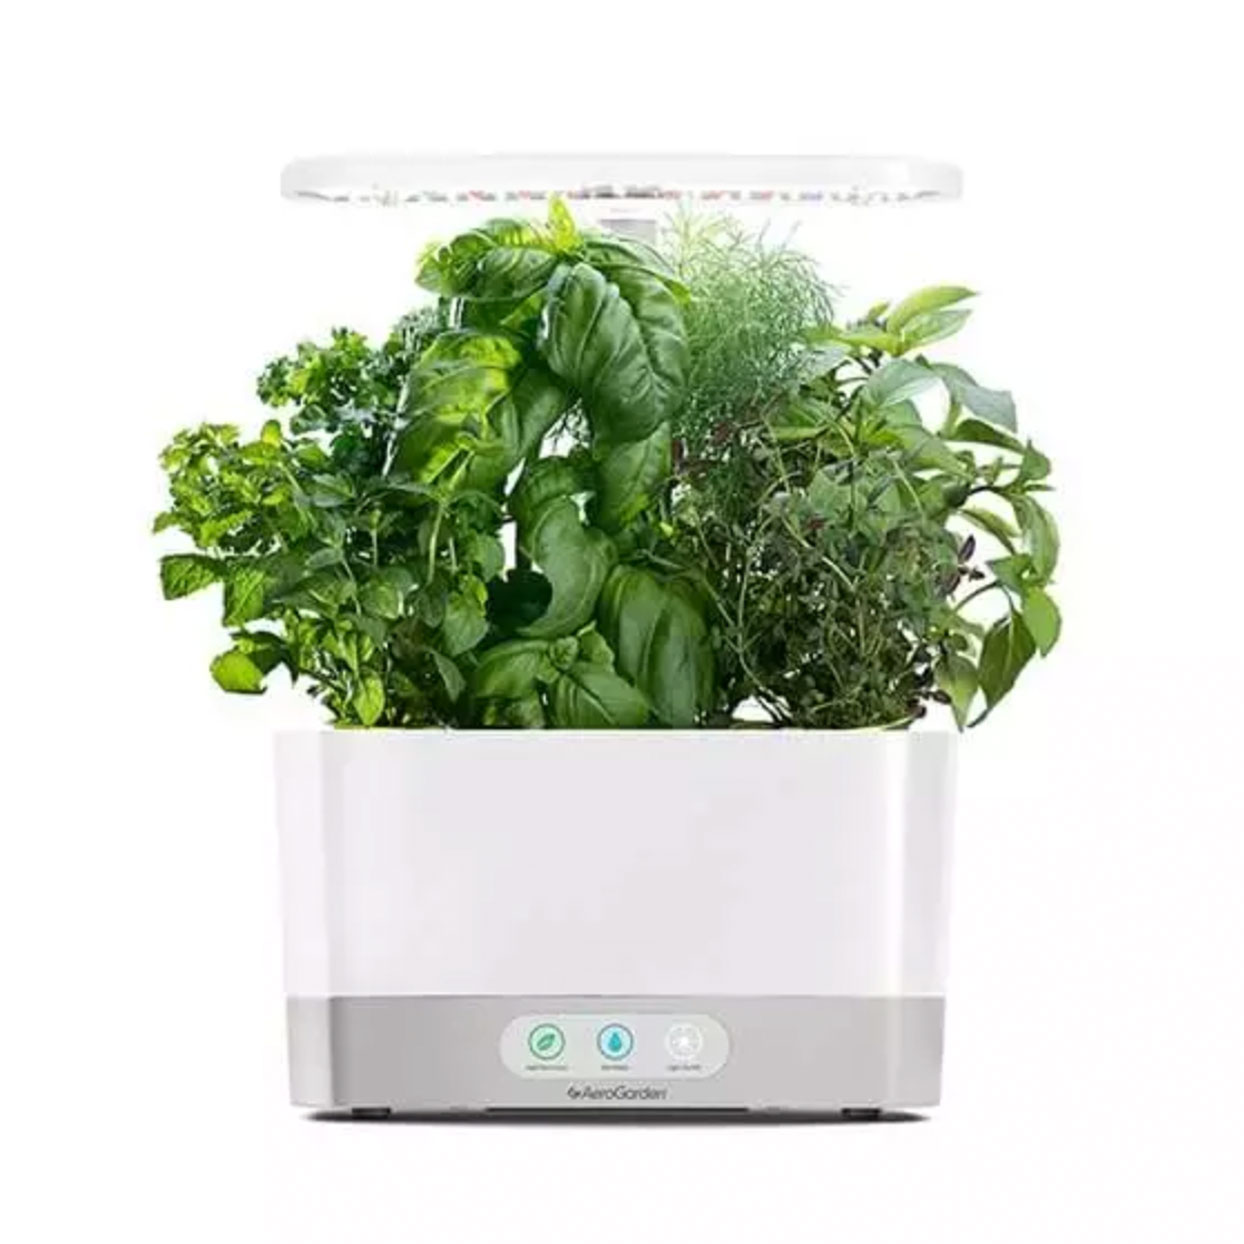 aerogarden indoor grower with mixed herbs